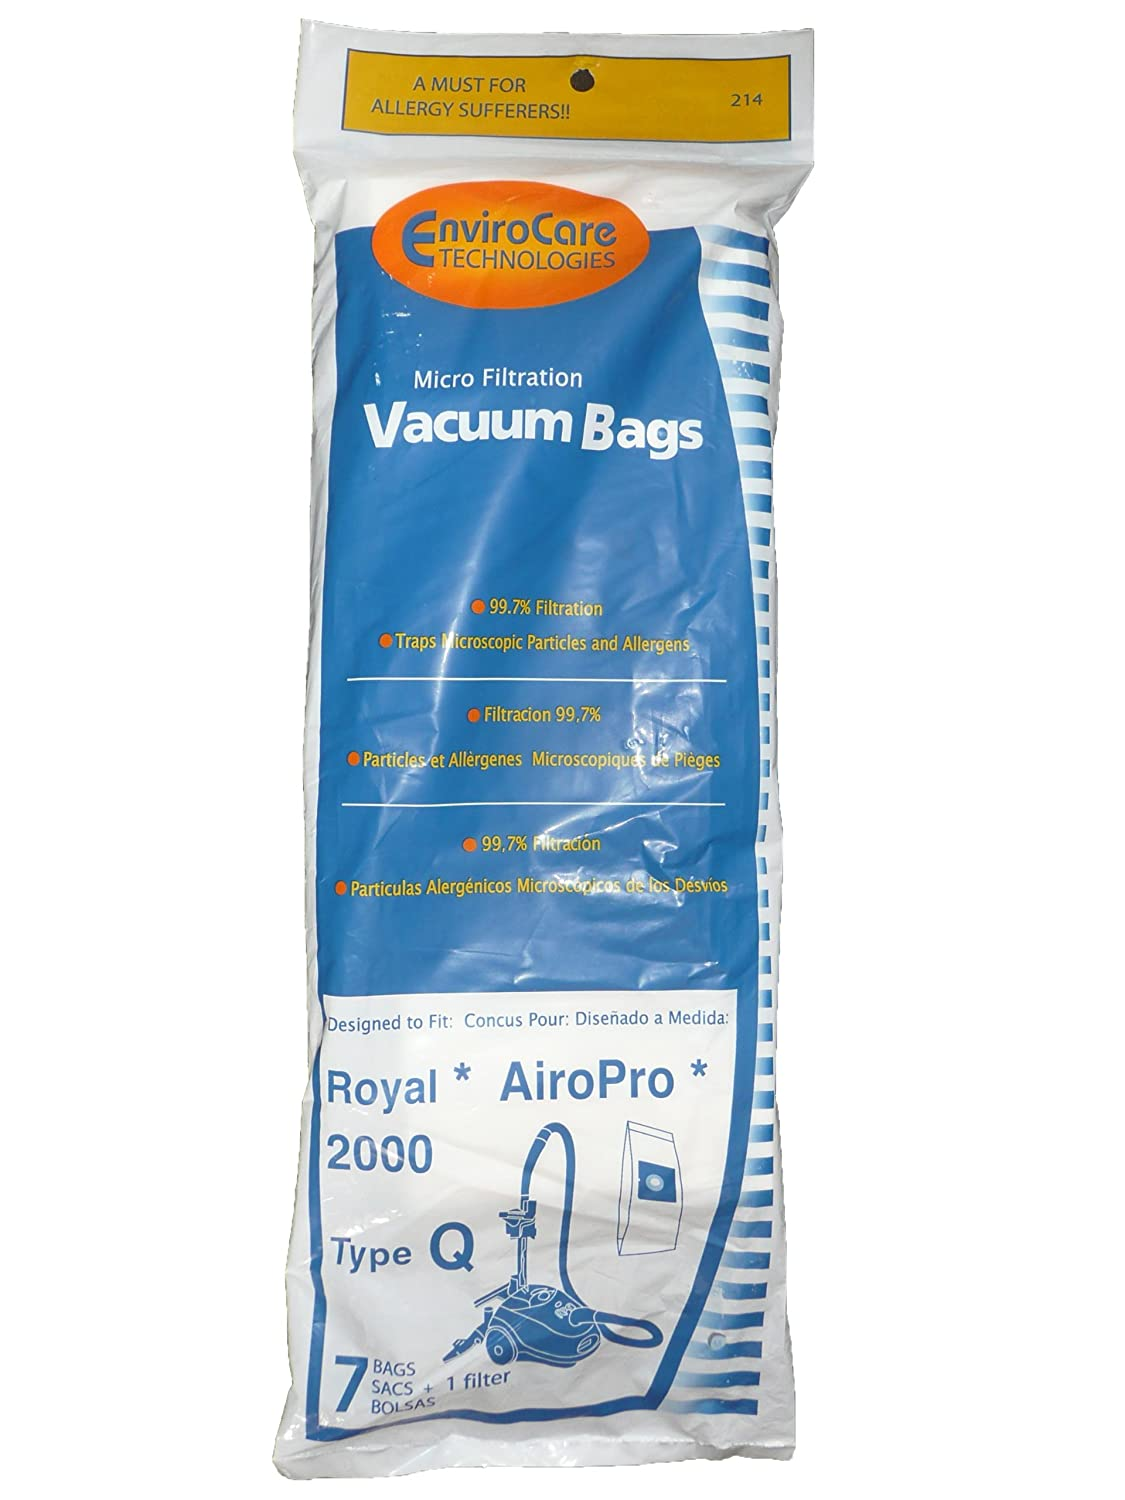 Amazon.com - 14 Royal Type Q Allergy Vacuum BAG + Filter ...